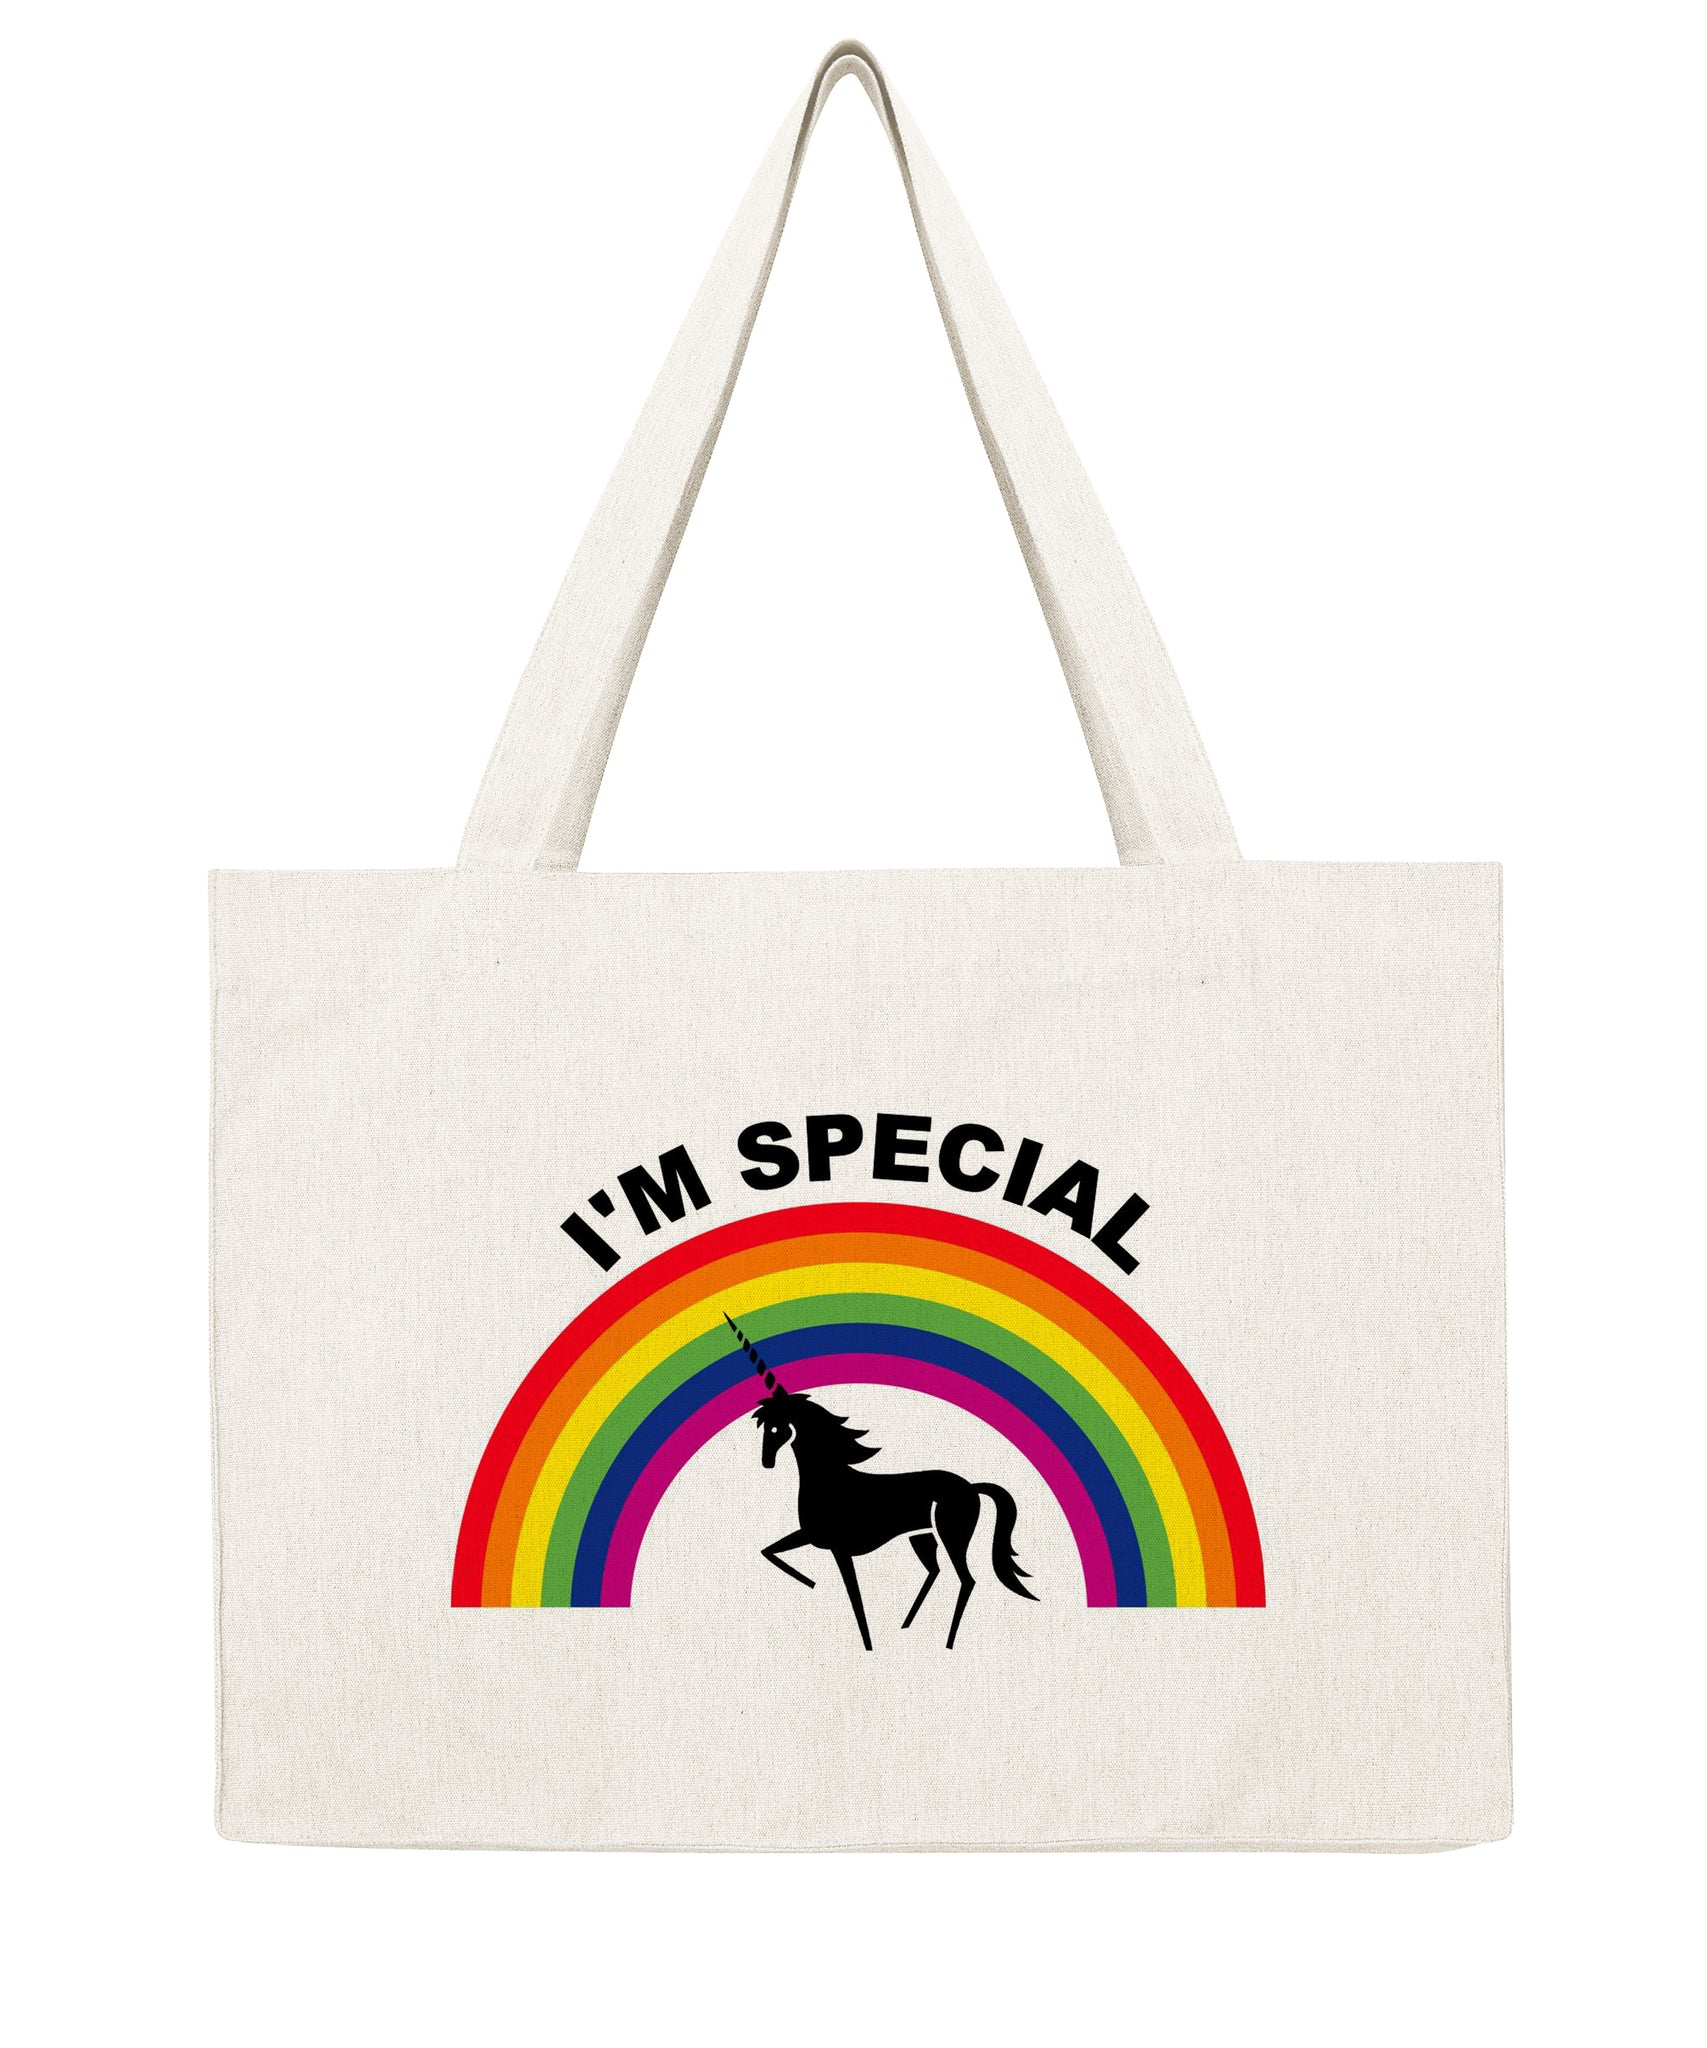 I'm special - Shopping bag-Sacs-Atelier Amelot